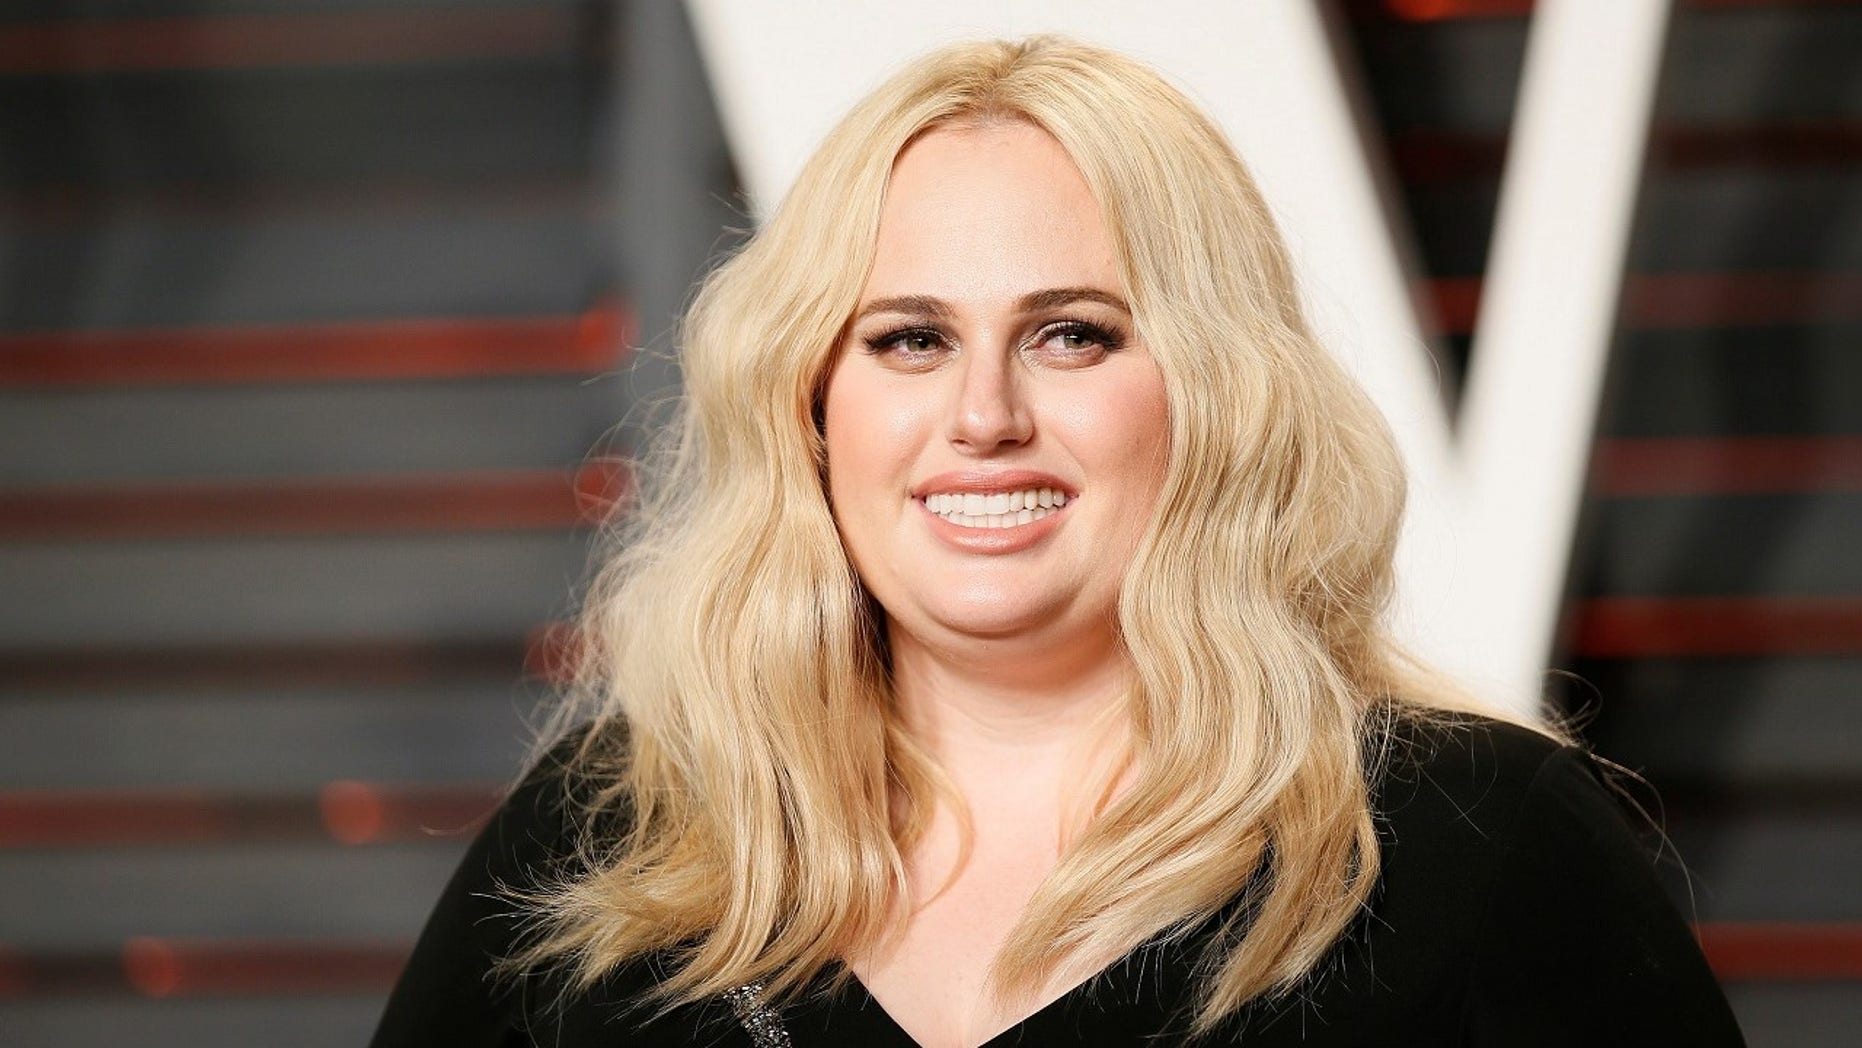 Rebel Wilson opened up about the lasting effects since she won her defamation lawsuit against Bauer Media.